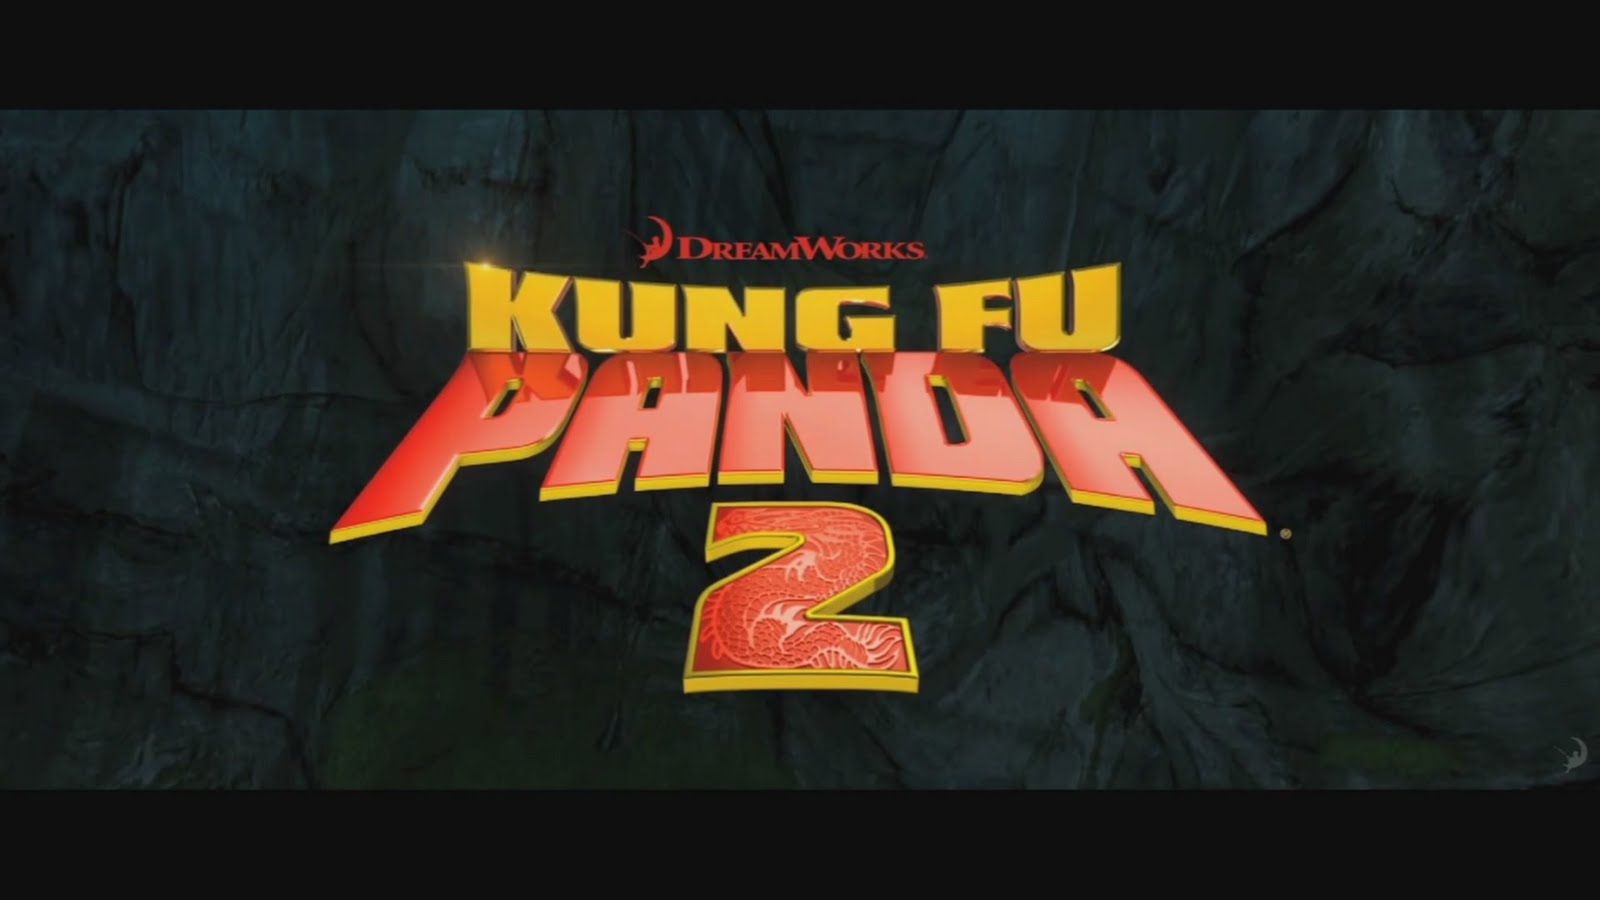 http://2.bp.blogspot.com/-33U6ucuI3dM/TdMsQjnIqjI/AAAAAAAAAGs/_5UVrYMG22U/s1600/Kung+Fu+Panda+2+Movie+Trailer+Official+%2528HD%2529.mp40008.jpg